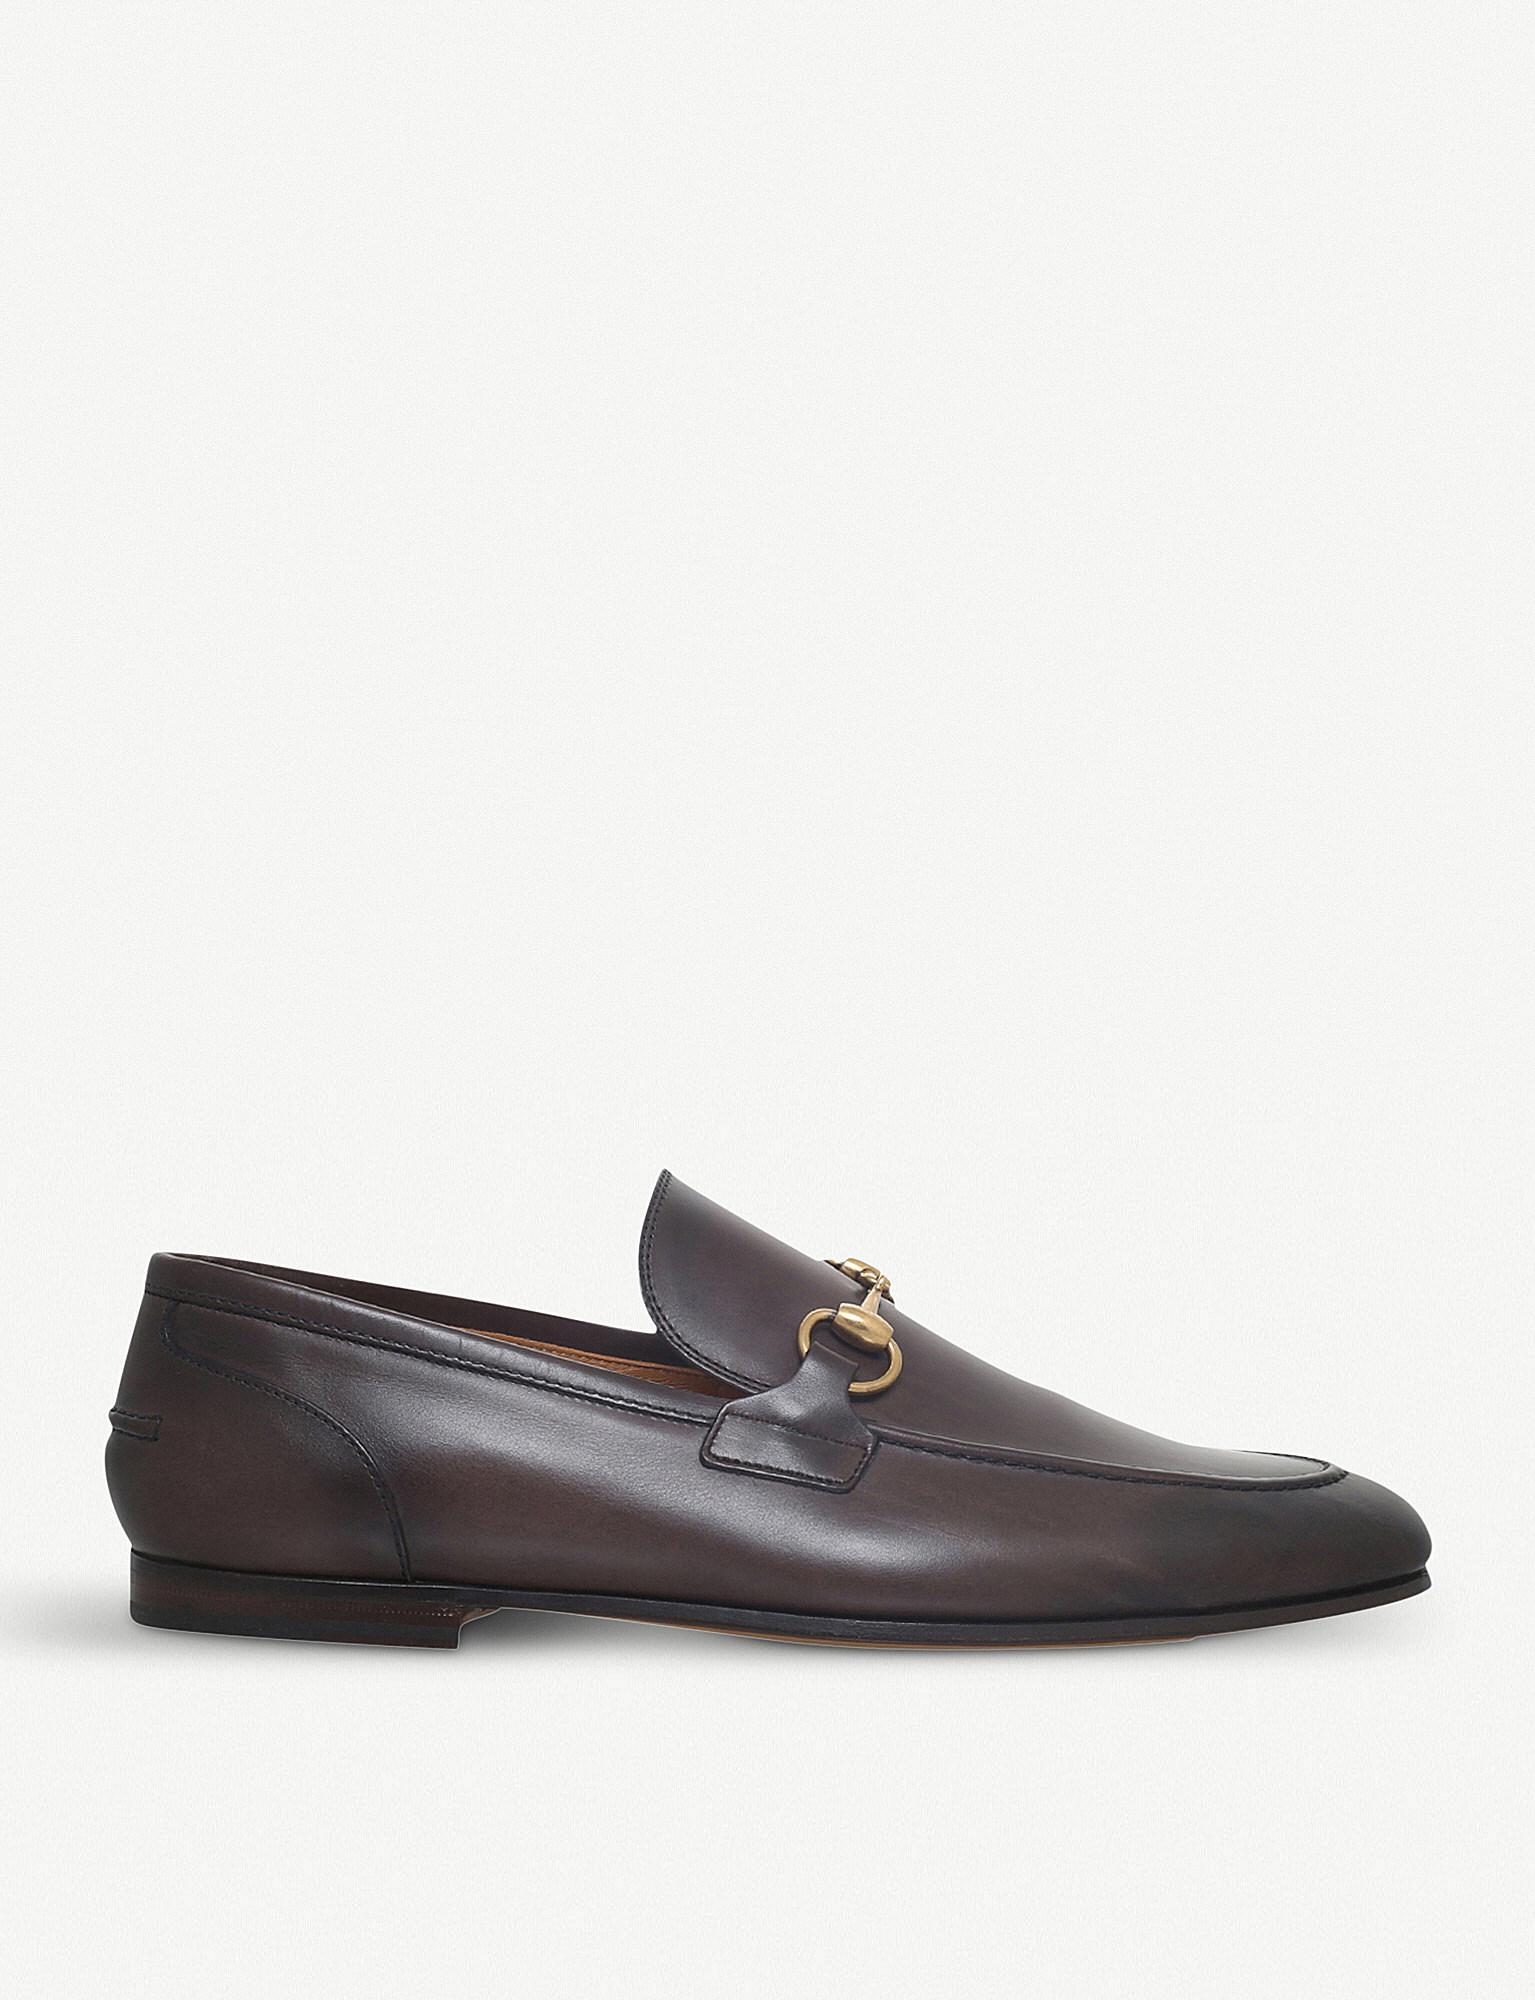 Gucci Jordaan Leather Moccasin Loafer x67j4ZJlVc